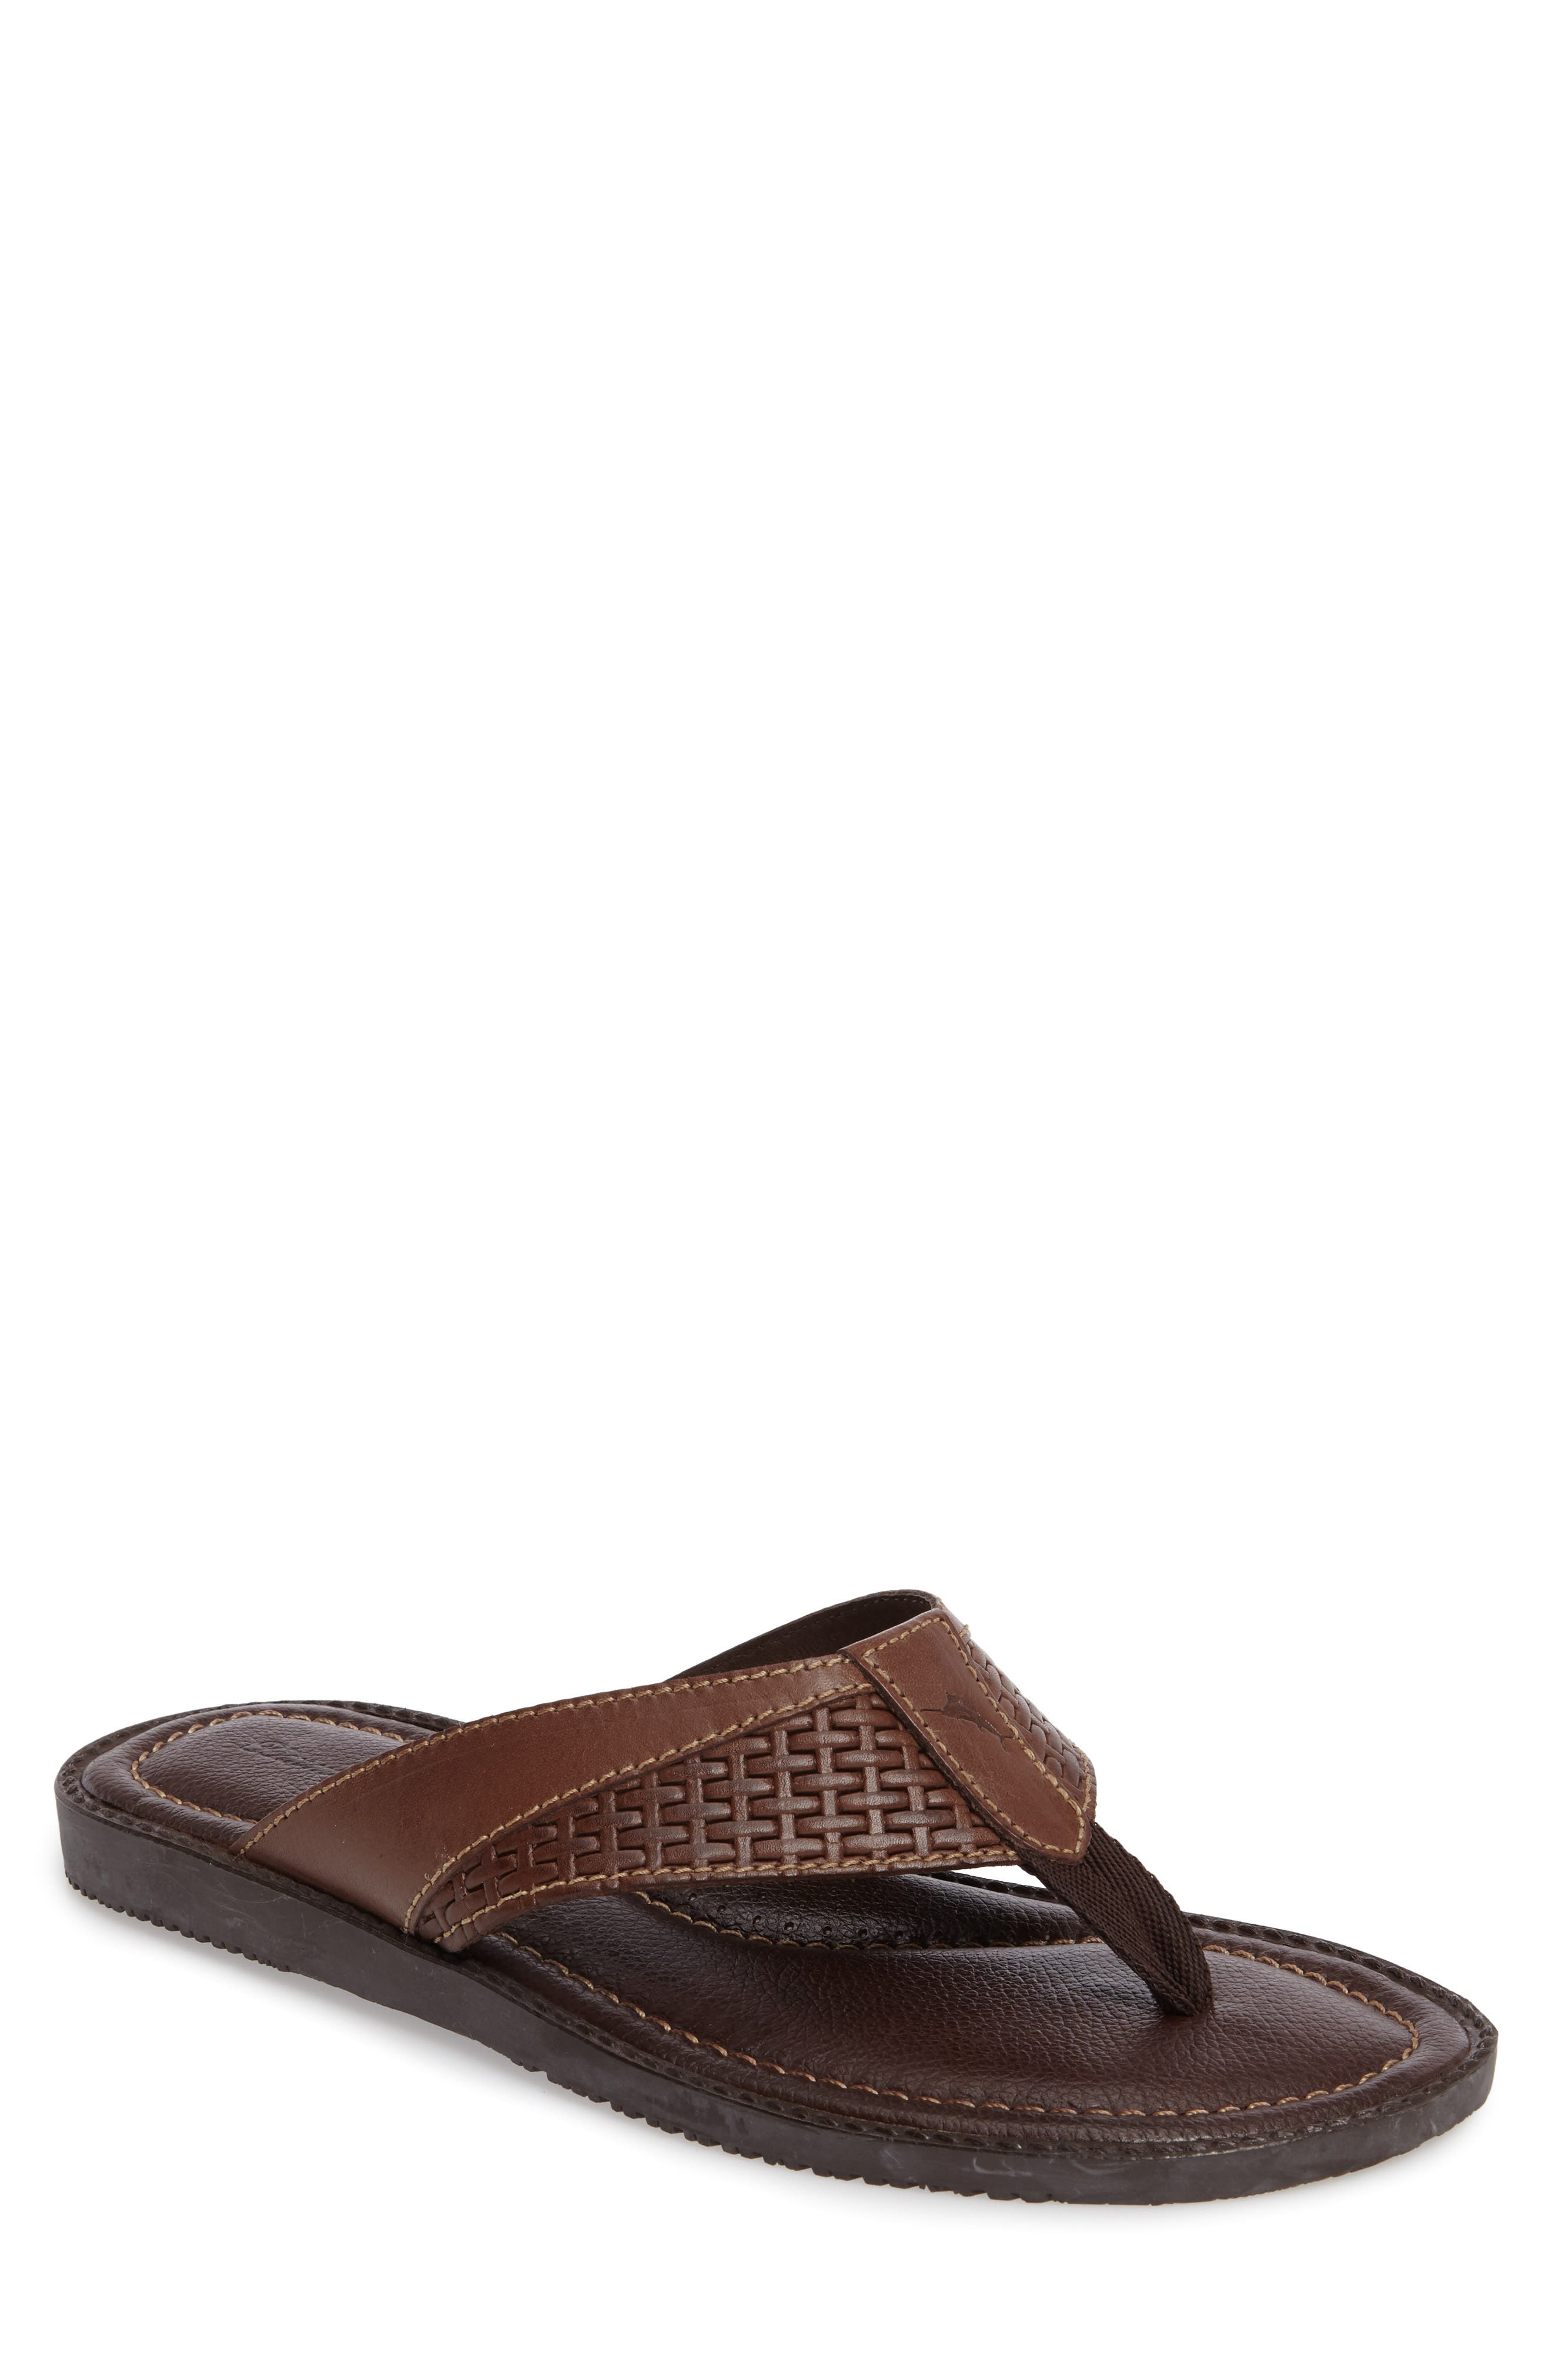 Anchors Ashore Flip Flop,                         Main,                         color, Dark Brown Leather